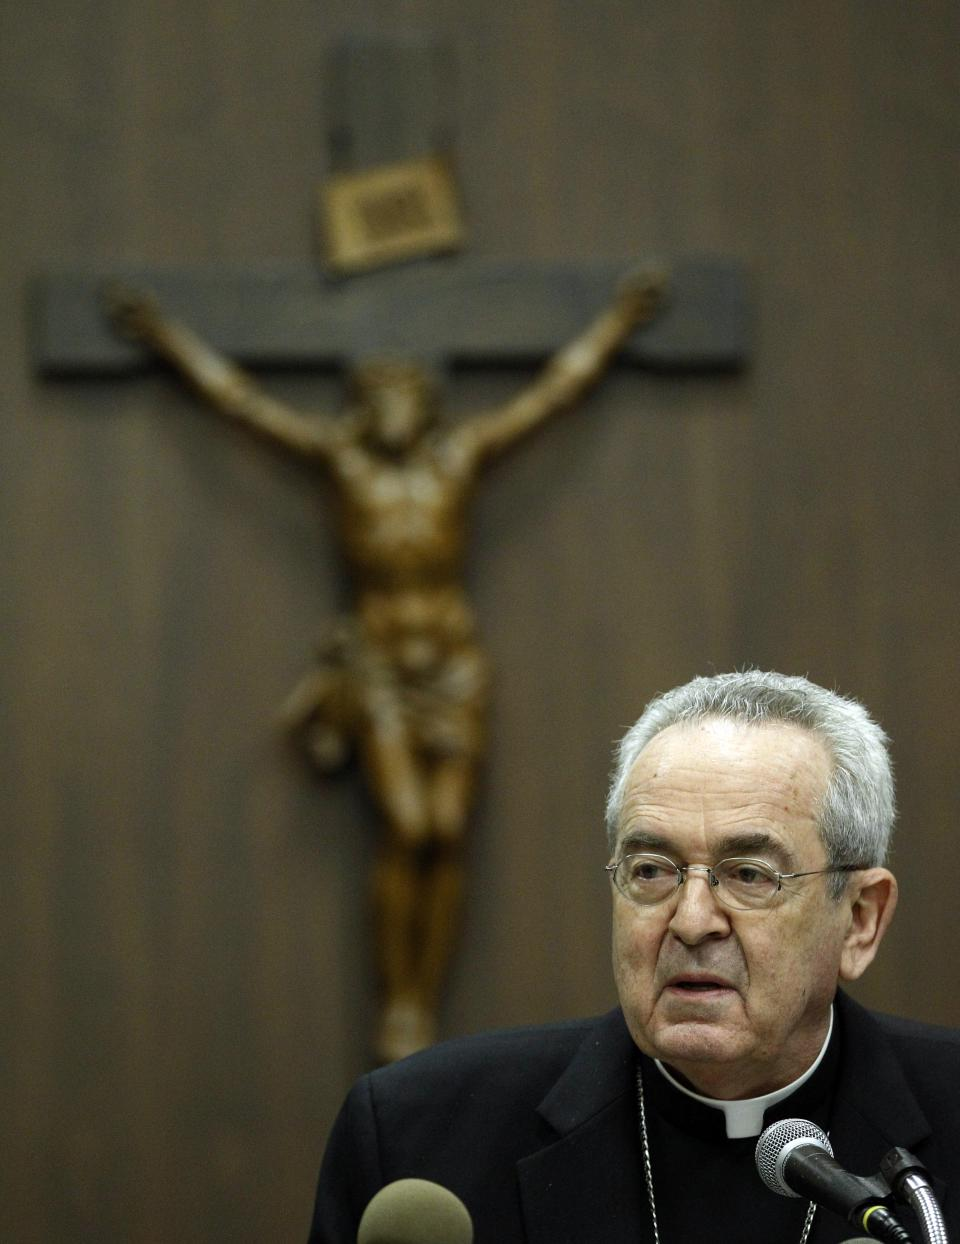 Cardinal Justin Rigali makes remarks during a news conference Tuesday, July 19, 2011, in Philadelphia.  The Vatican on Tuesday named Chaput as Rigali's successor as Archbishop of Philadelphia. (AP Photo/Matt Rourke)